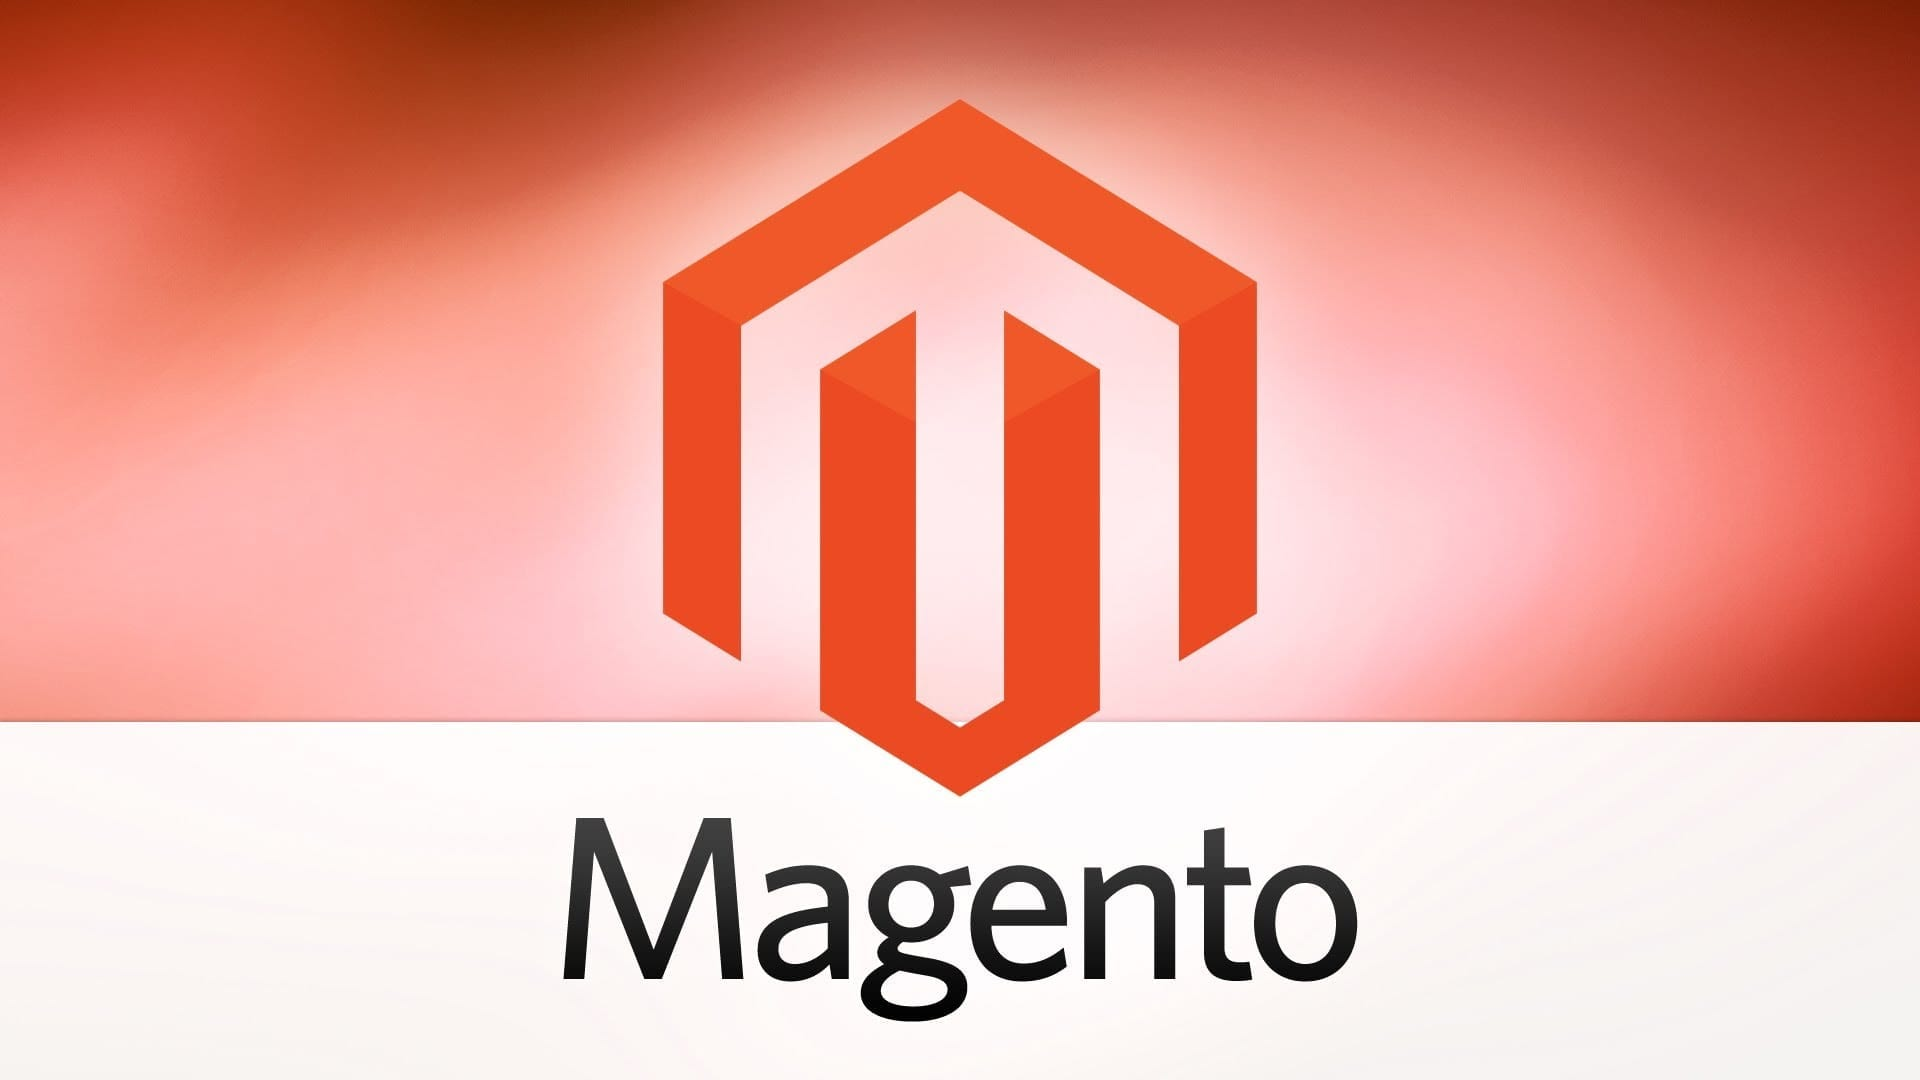 resolving-the-numeric-value-out-of-range-1690-bigint-unsigned-error-in-magento.jpg